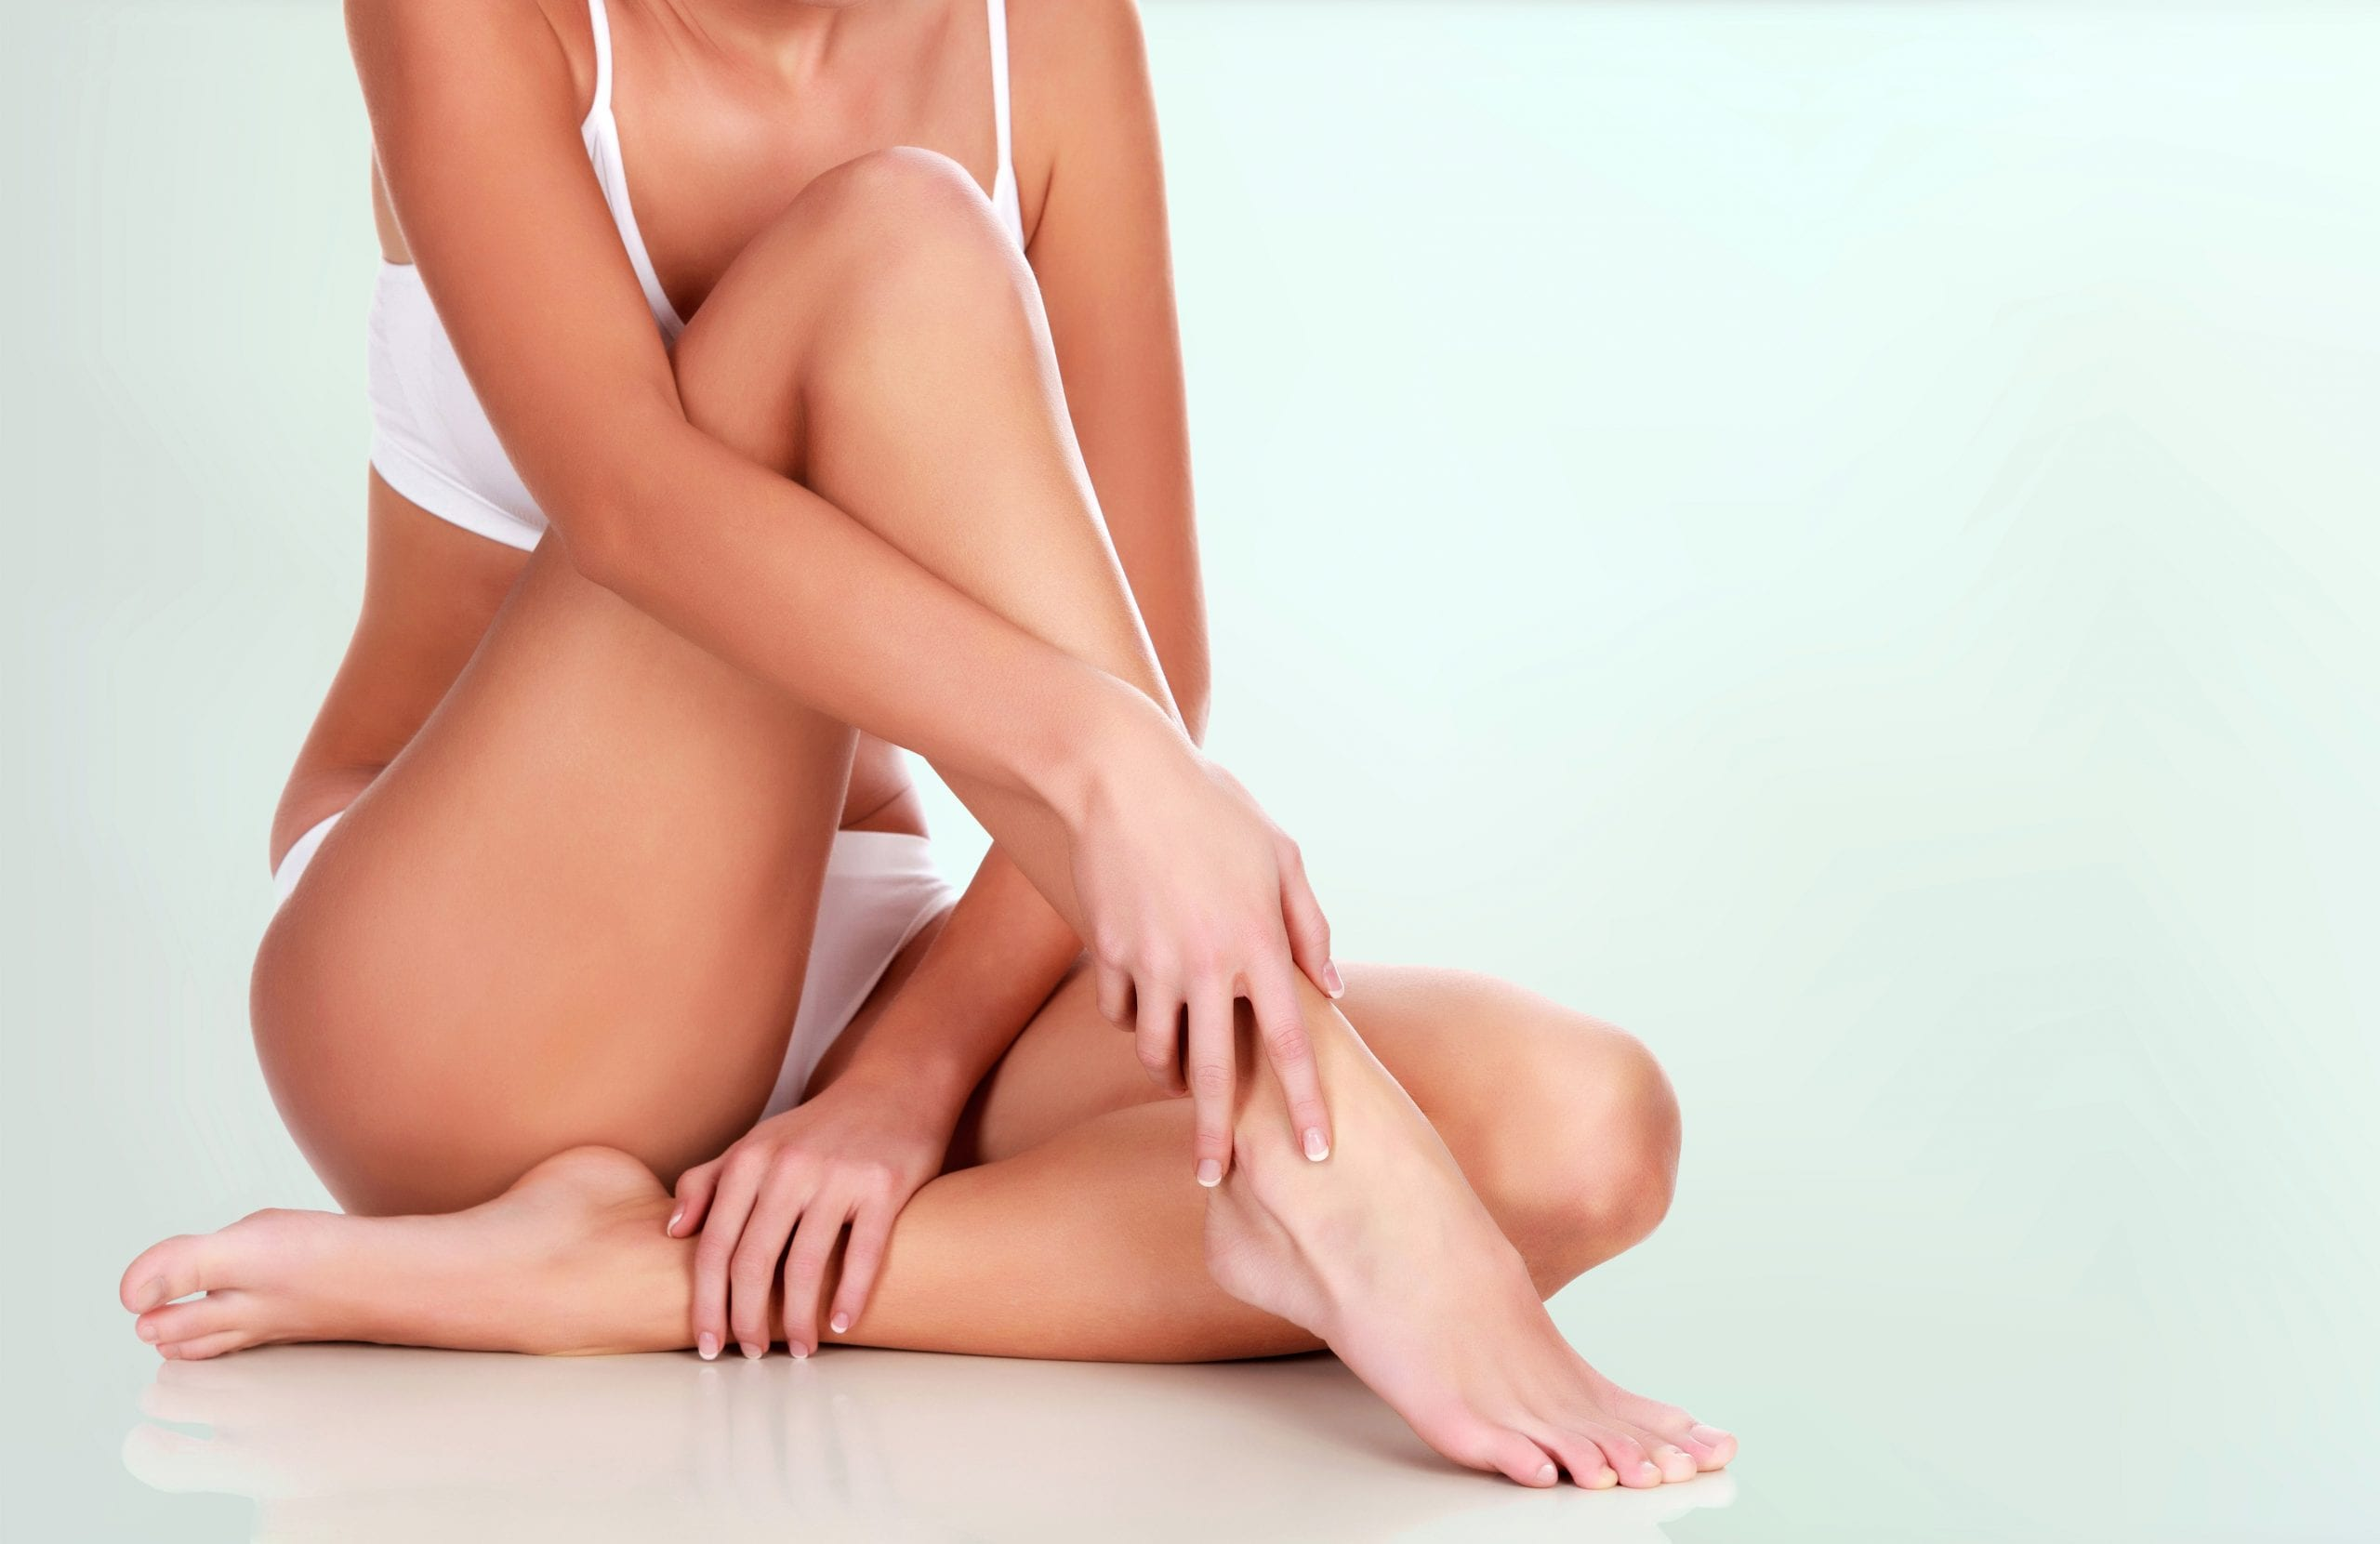 laser_hair_removal_photo